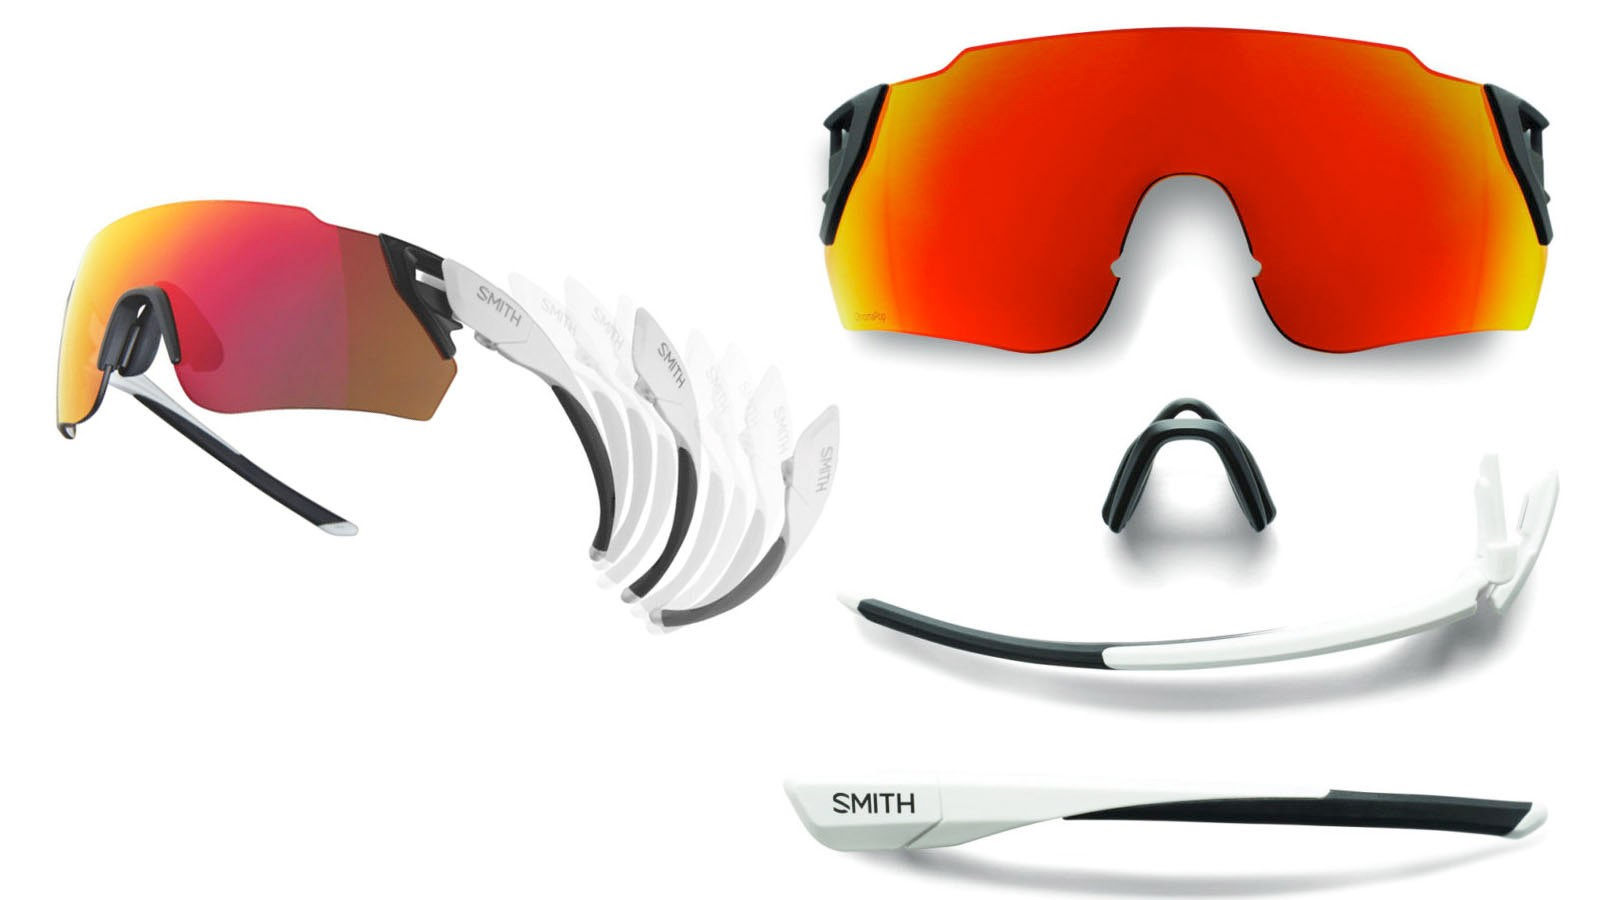 Smith's Attack sunnies use magnets for quick lens changes